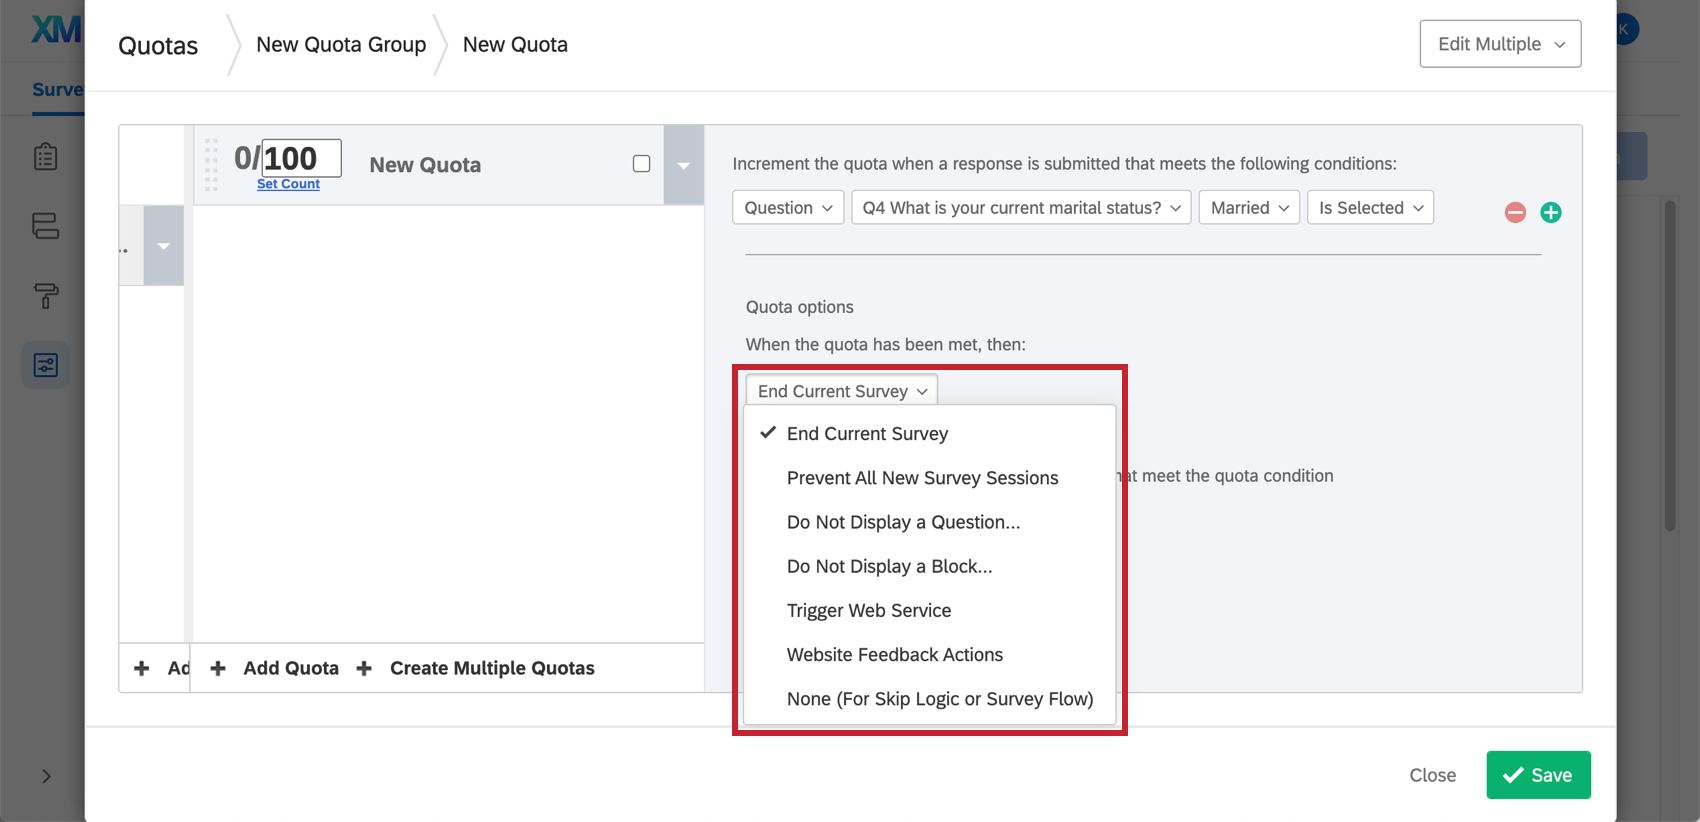 End Current Survey can be dropped down for more options